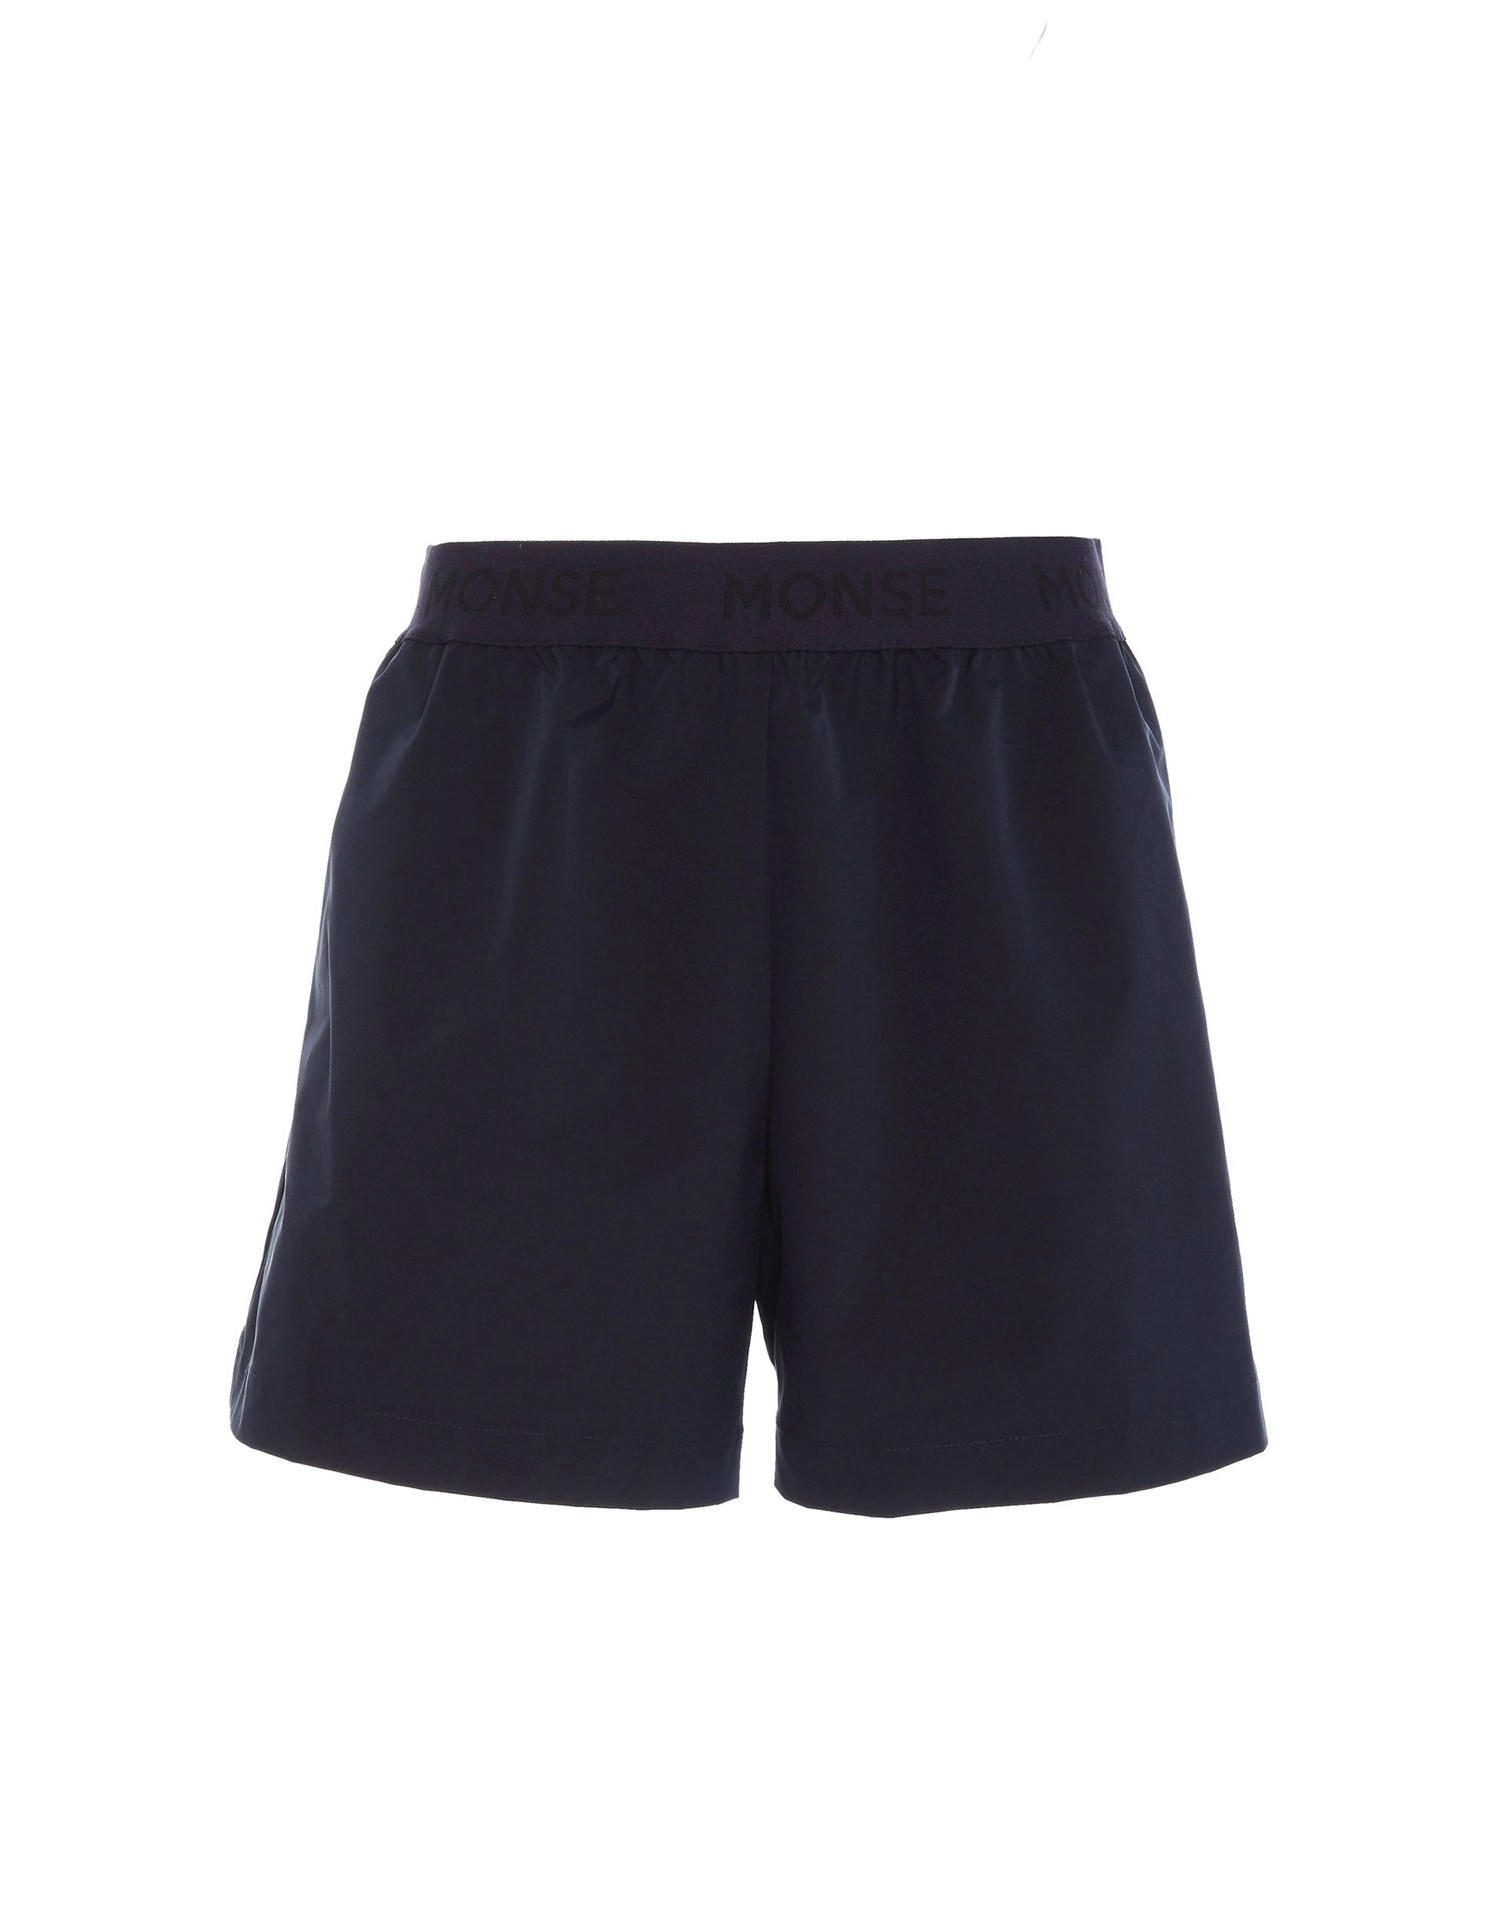 Monse Women's Jersey Shorts in Navy on Model Front